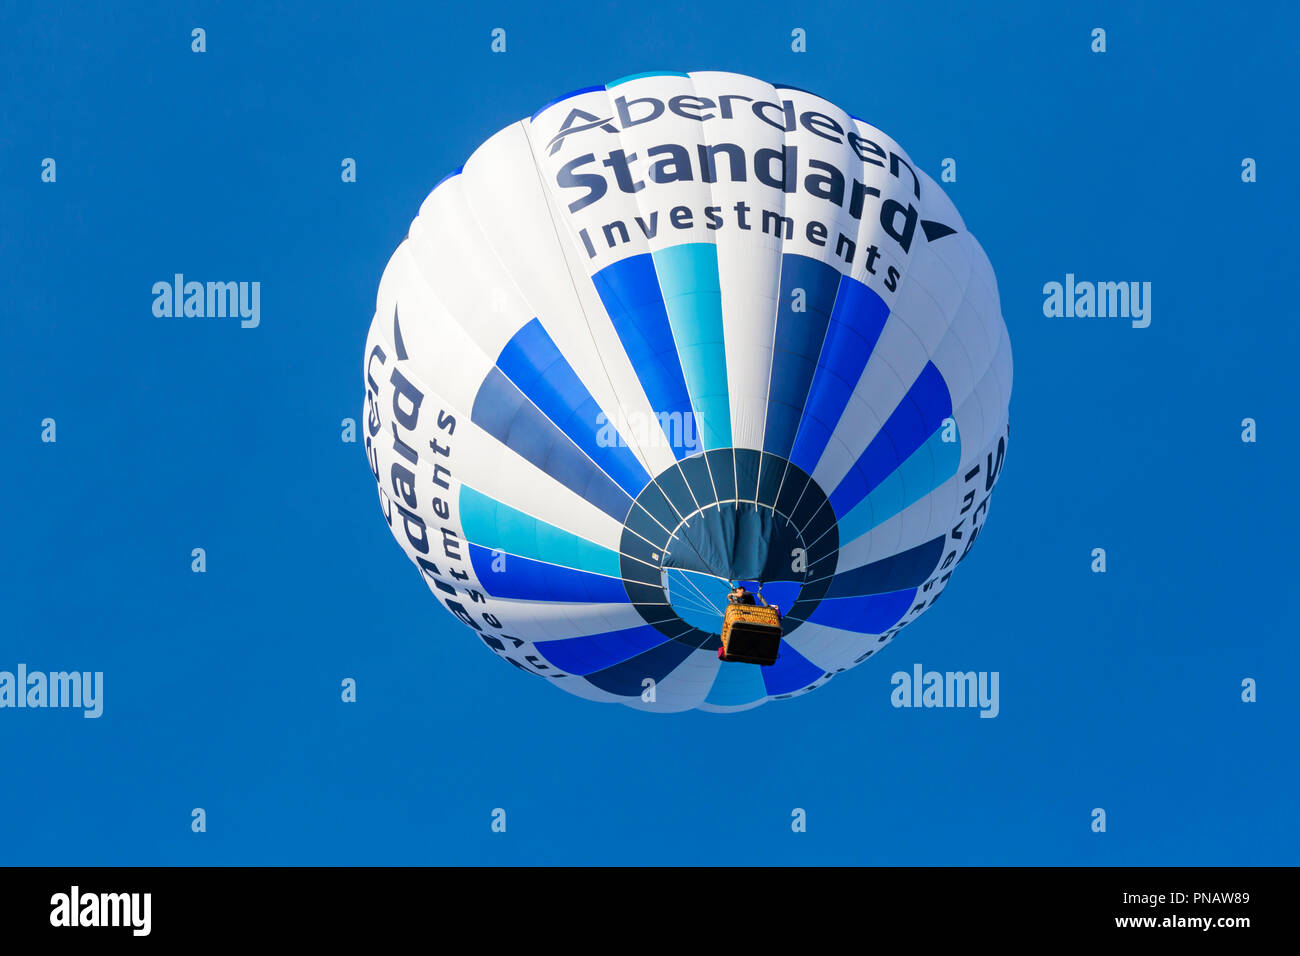 Aberdeen Standard Investments hot air balloon in the sky at Longleat Sky Safari, Wiltshire, UK in September - Stock Image